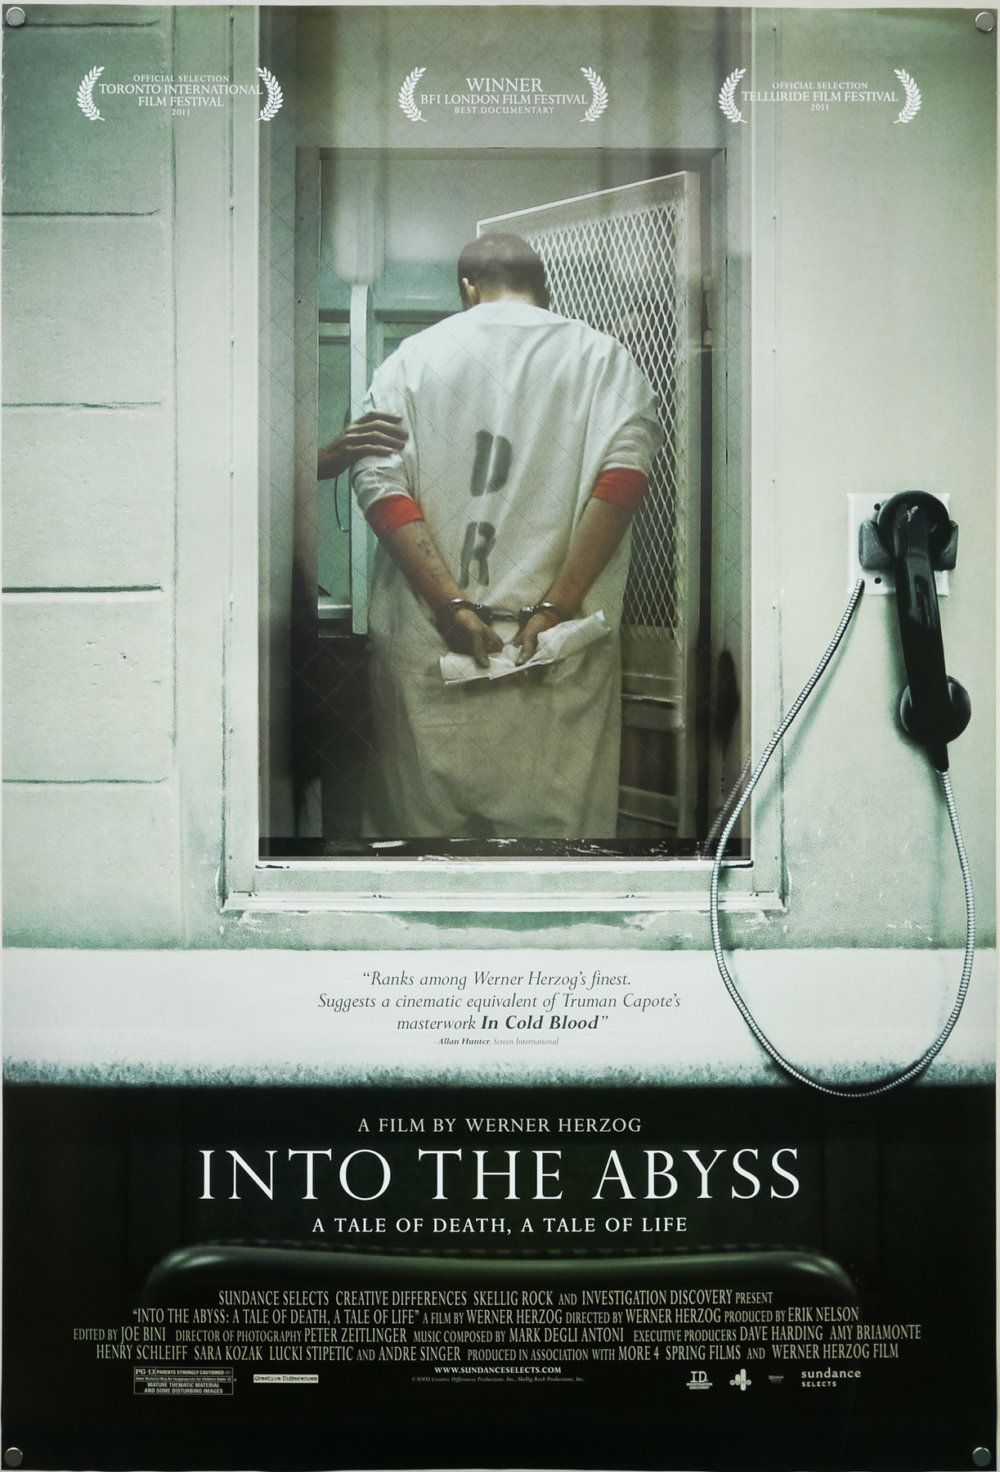 Into the Abyss / one sheet / USA